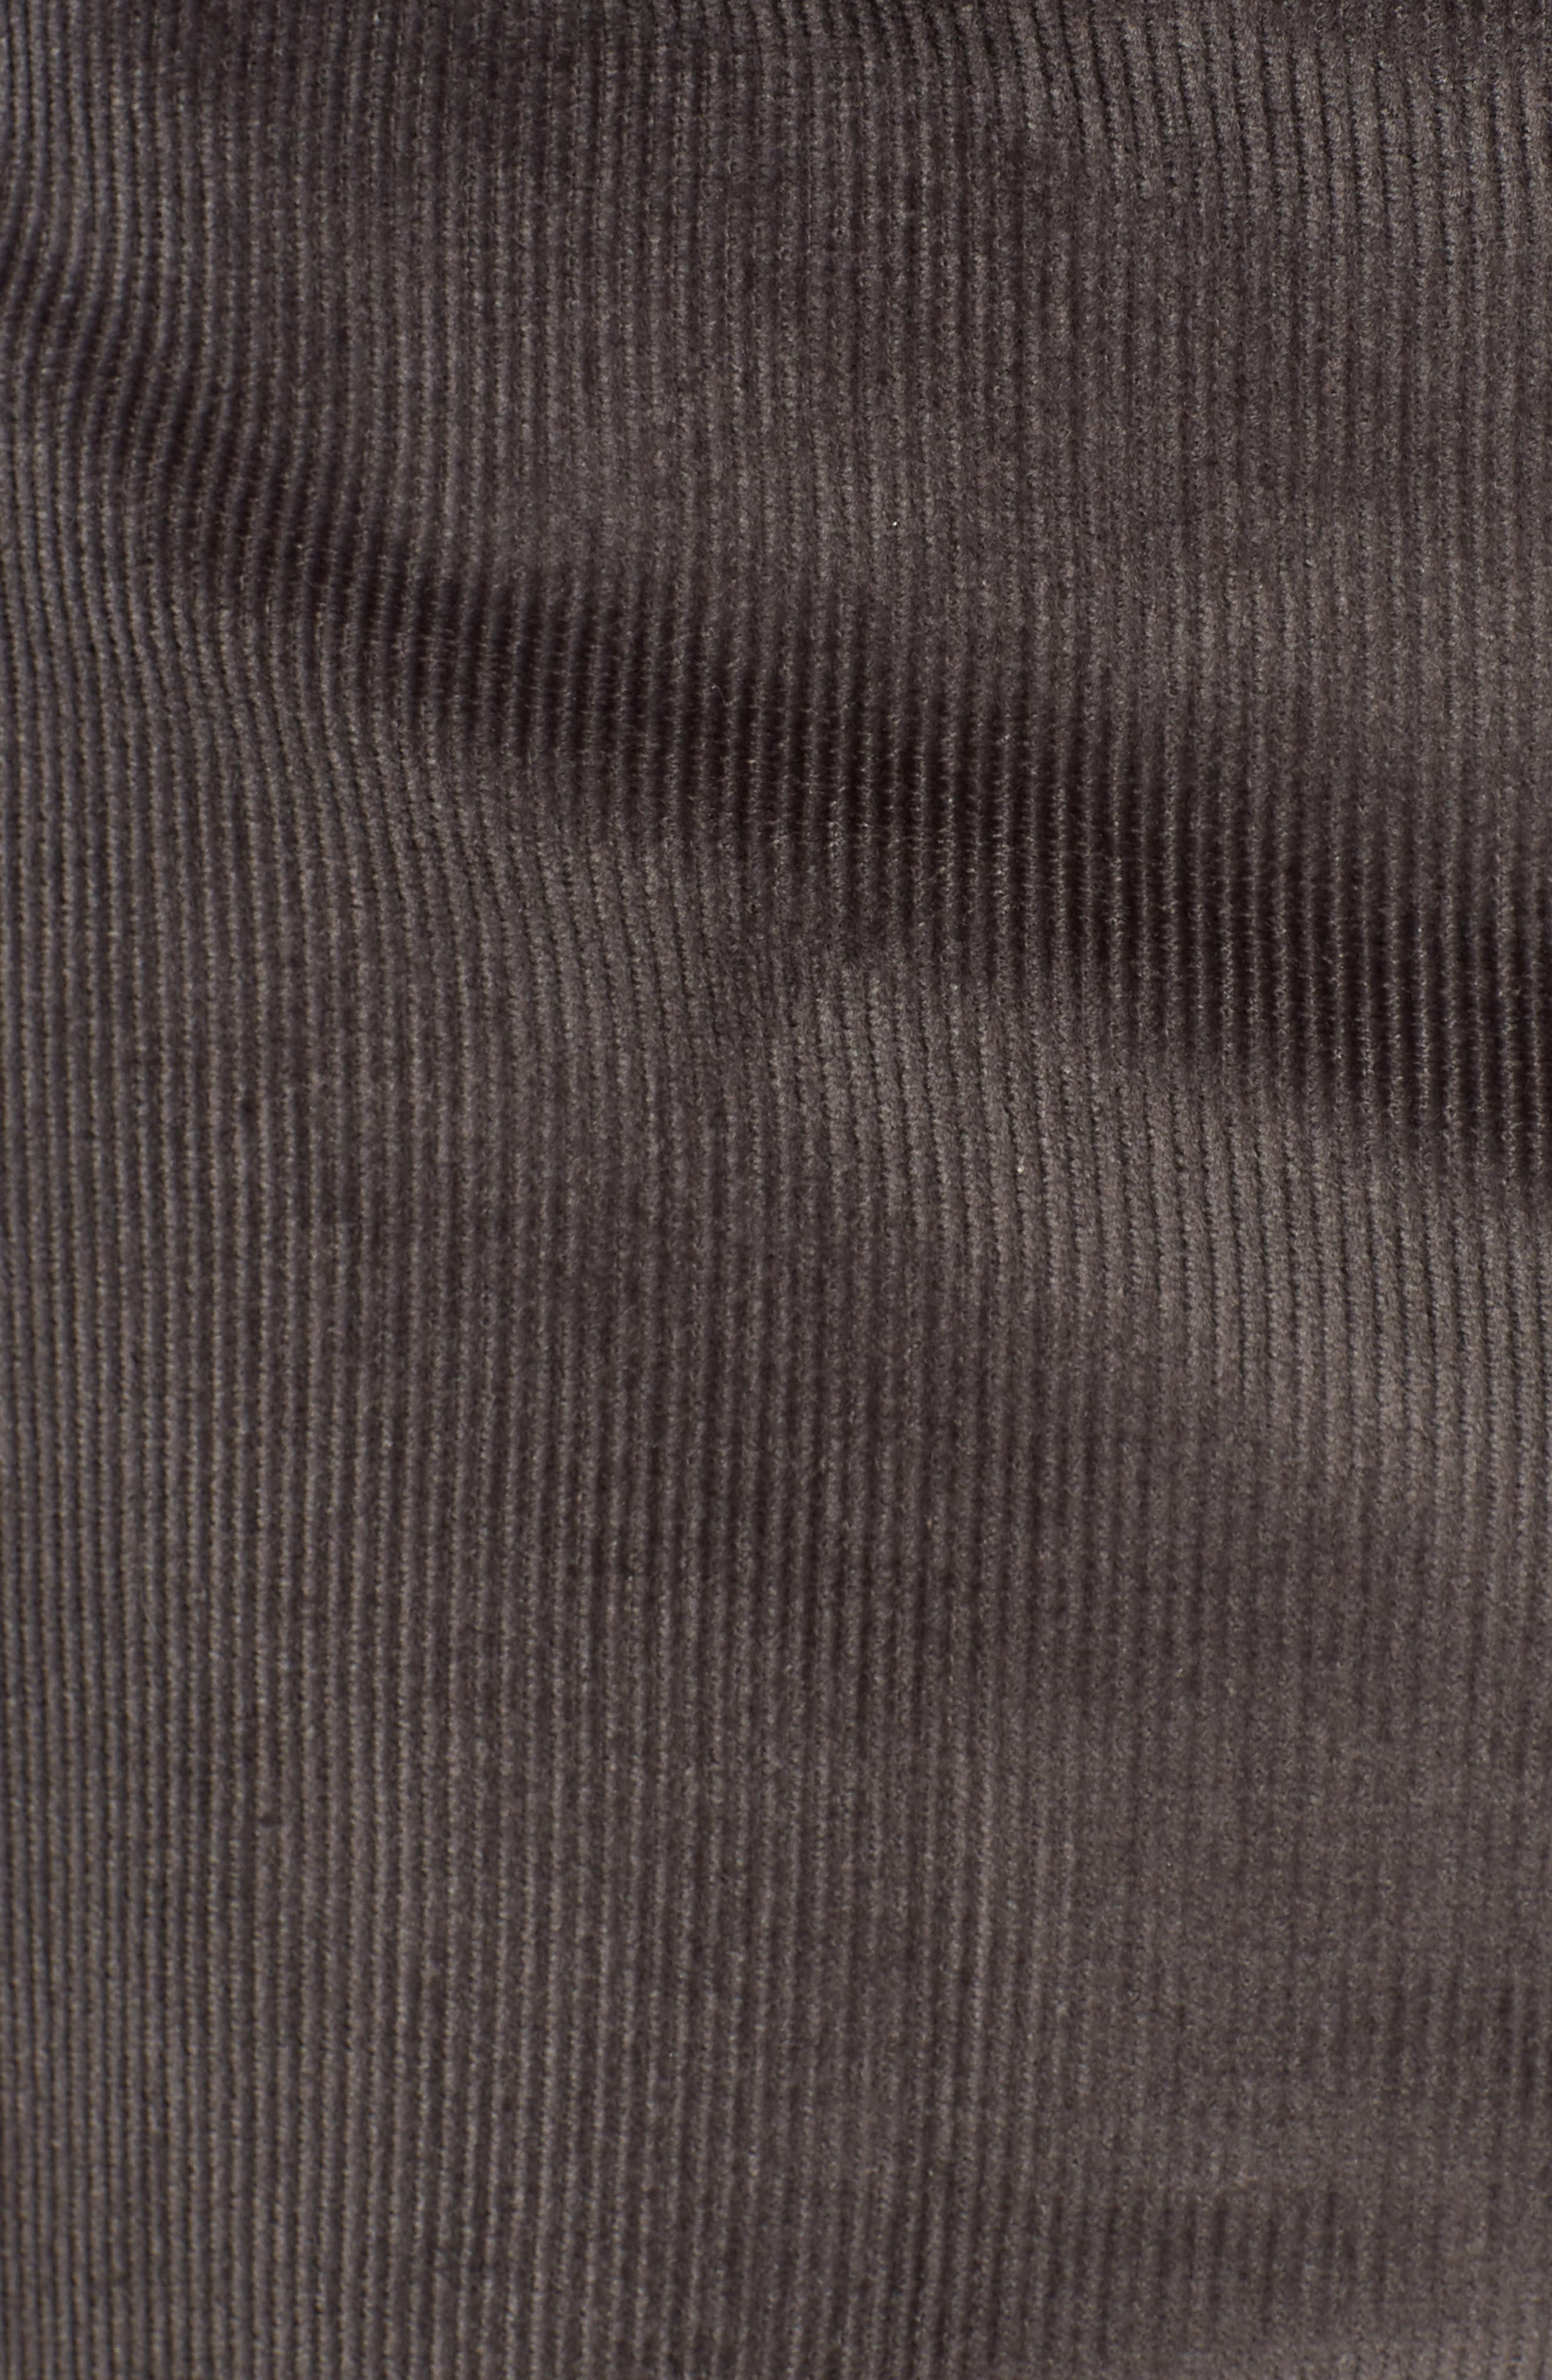 Torino Traditional Fit Flat Front Corduroy Trousers,                             Alternate thumbnail 5, color,                             GREY